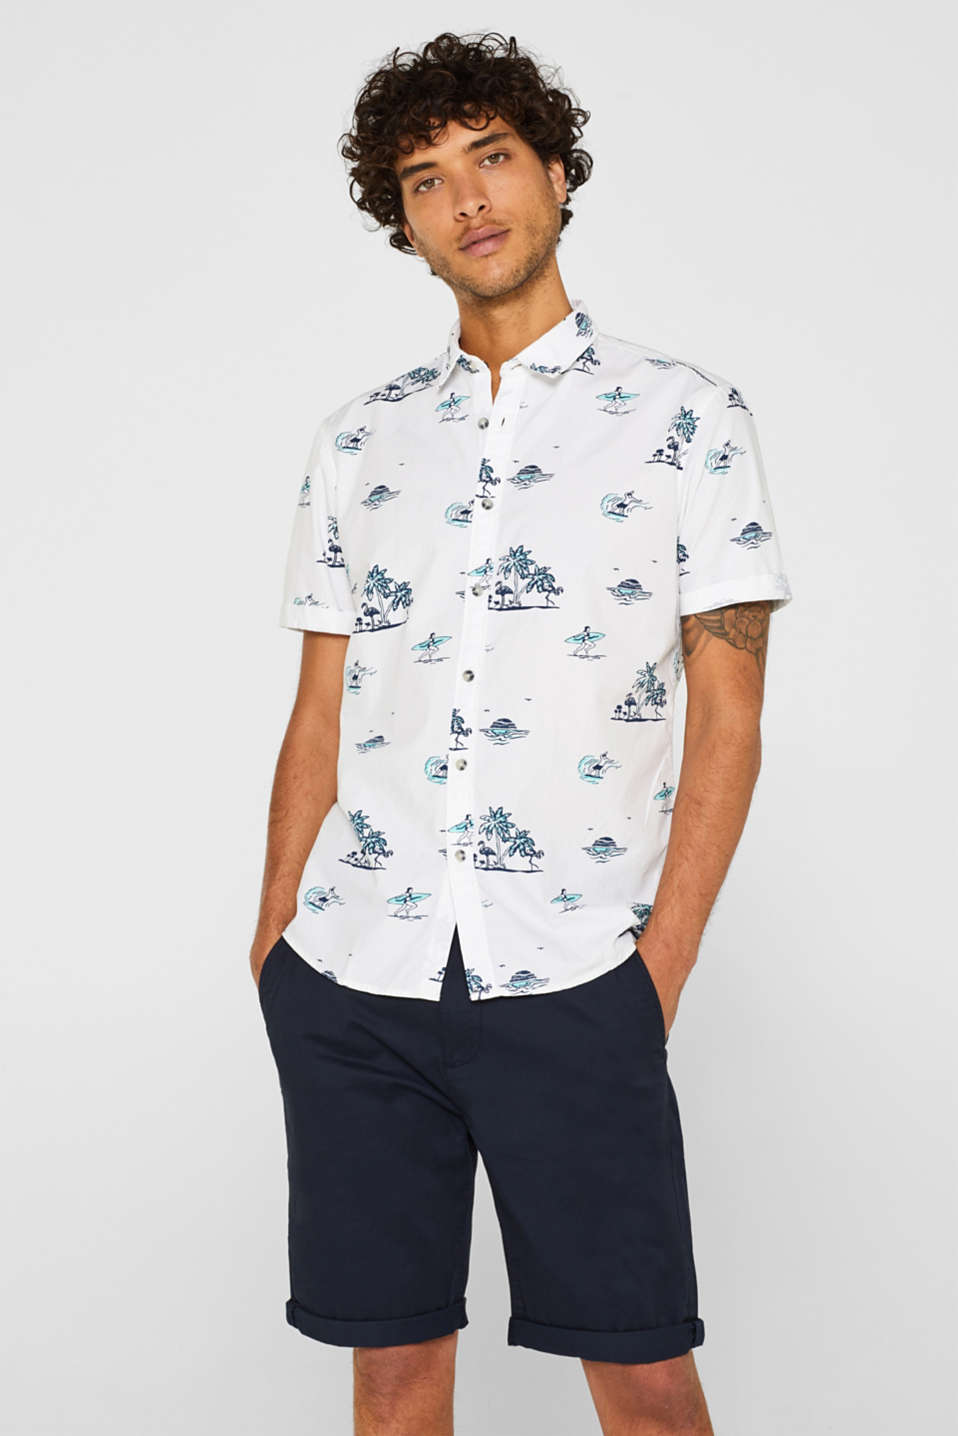 edc - Short-sleeved shirt with a motif print, 100% cotton